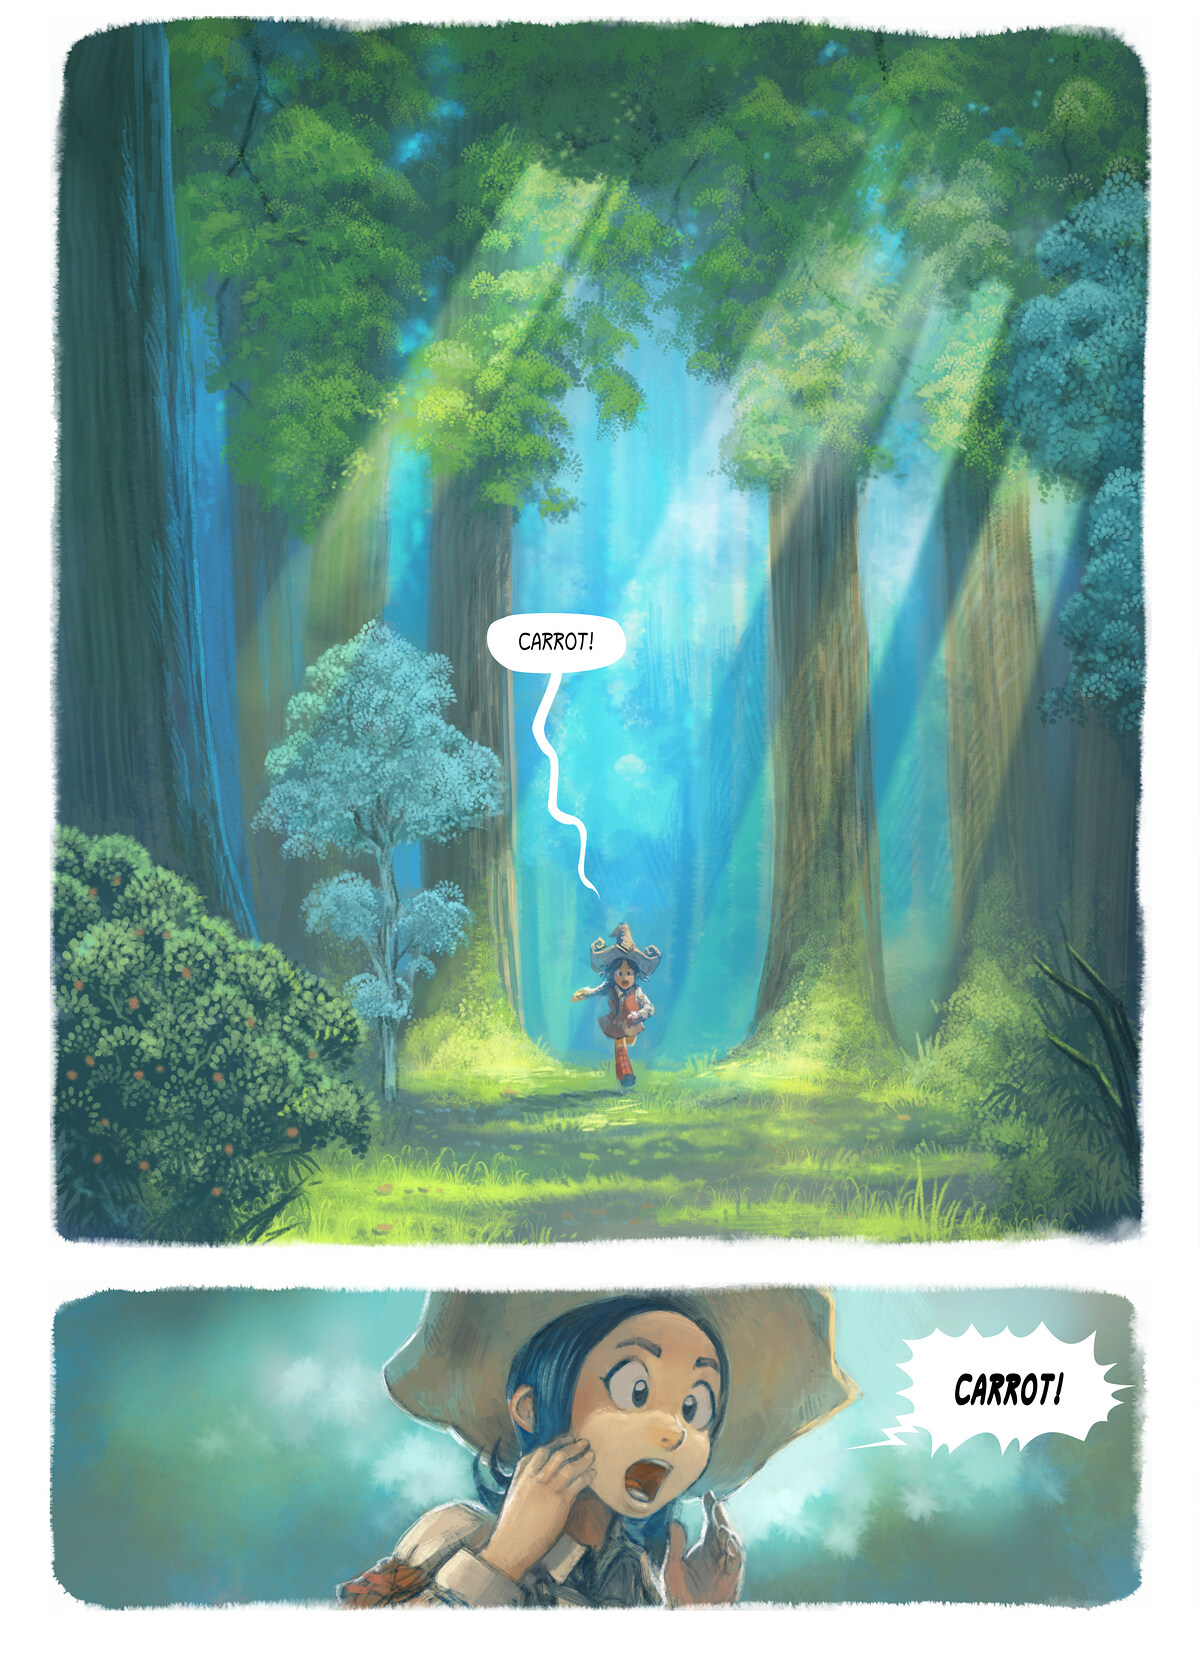 A webcomic page of Pepper&Carrot, episode 7 [id], halaman 1